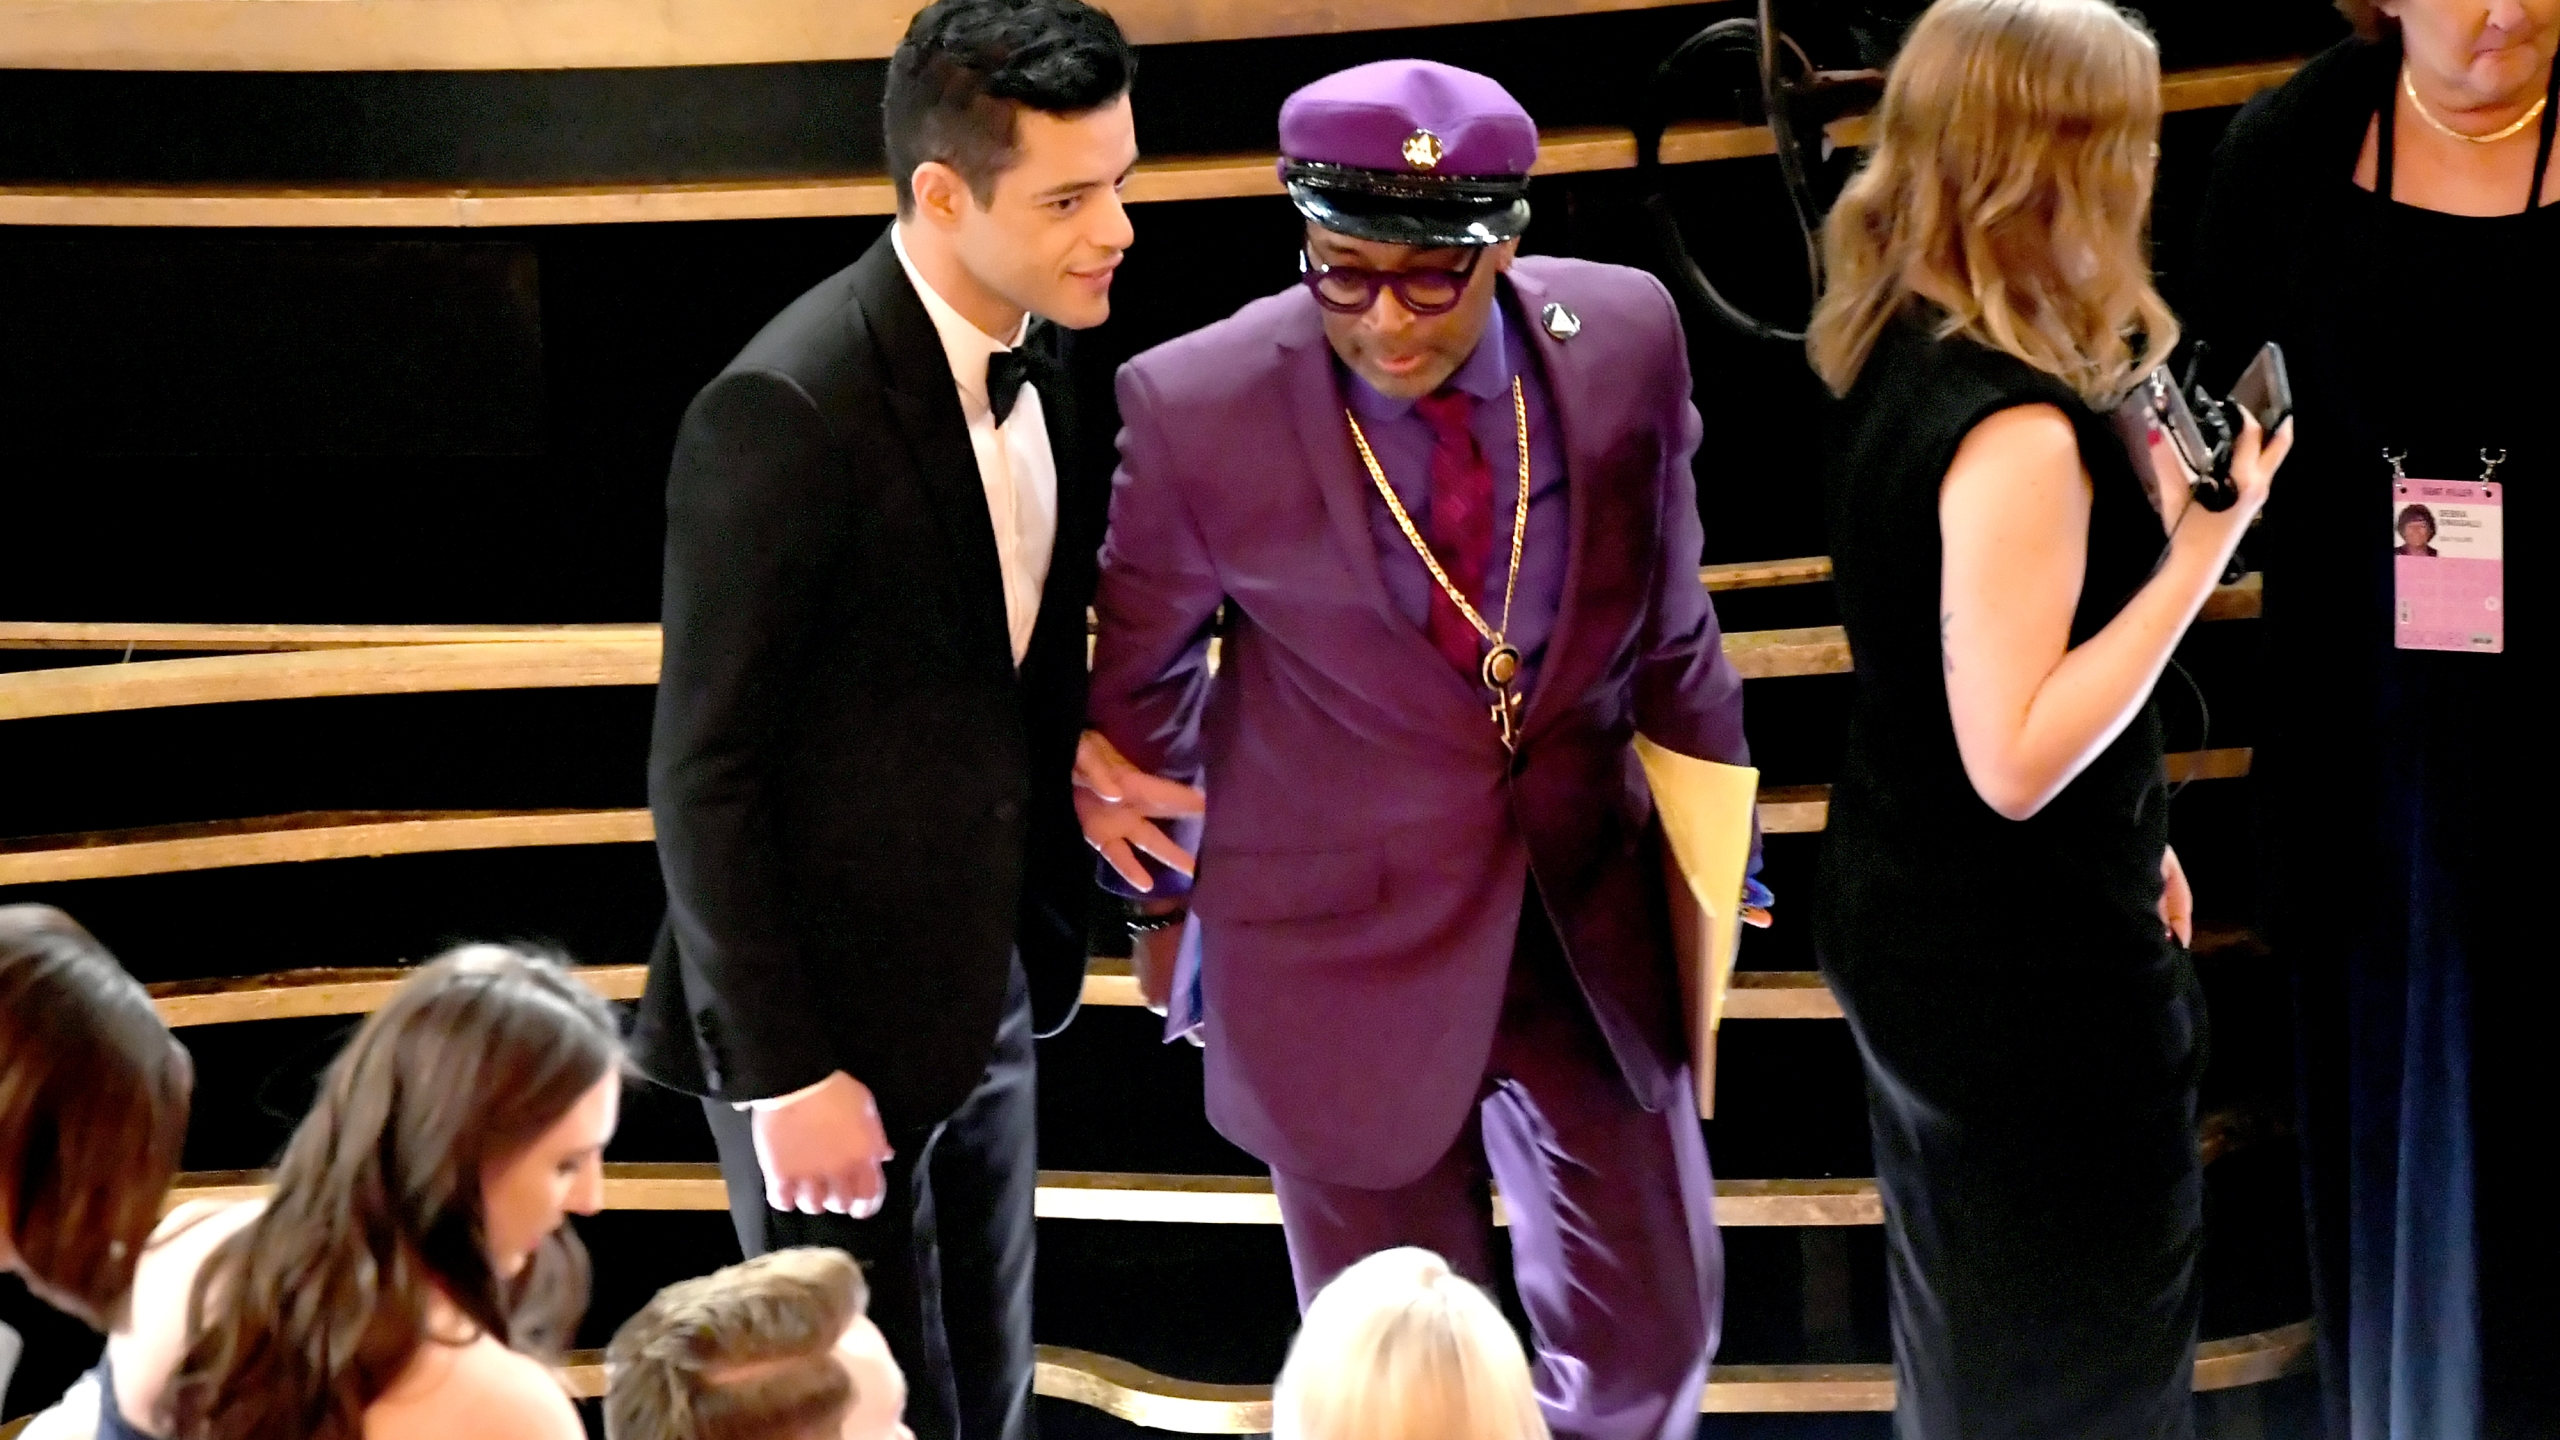 (L-R) Rami Malek and Spike Lee during the 91st Annual Academy Awards at Dolby Theatre on February 24, 2019 in Hollywood, California. (Credit: Kevin Winter/Getty Images)